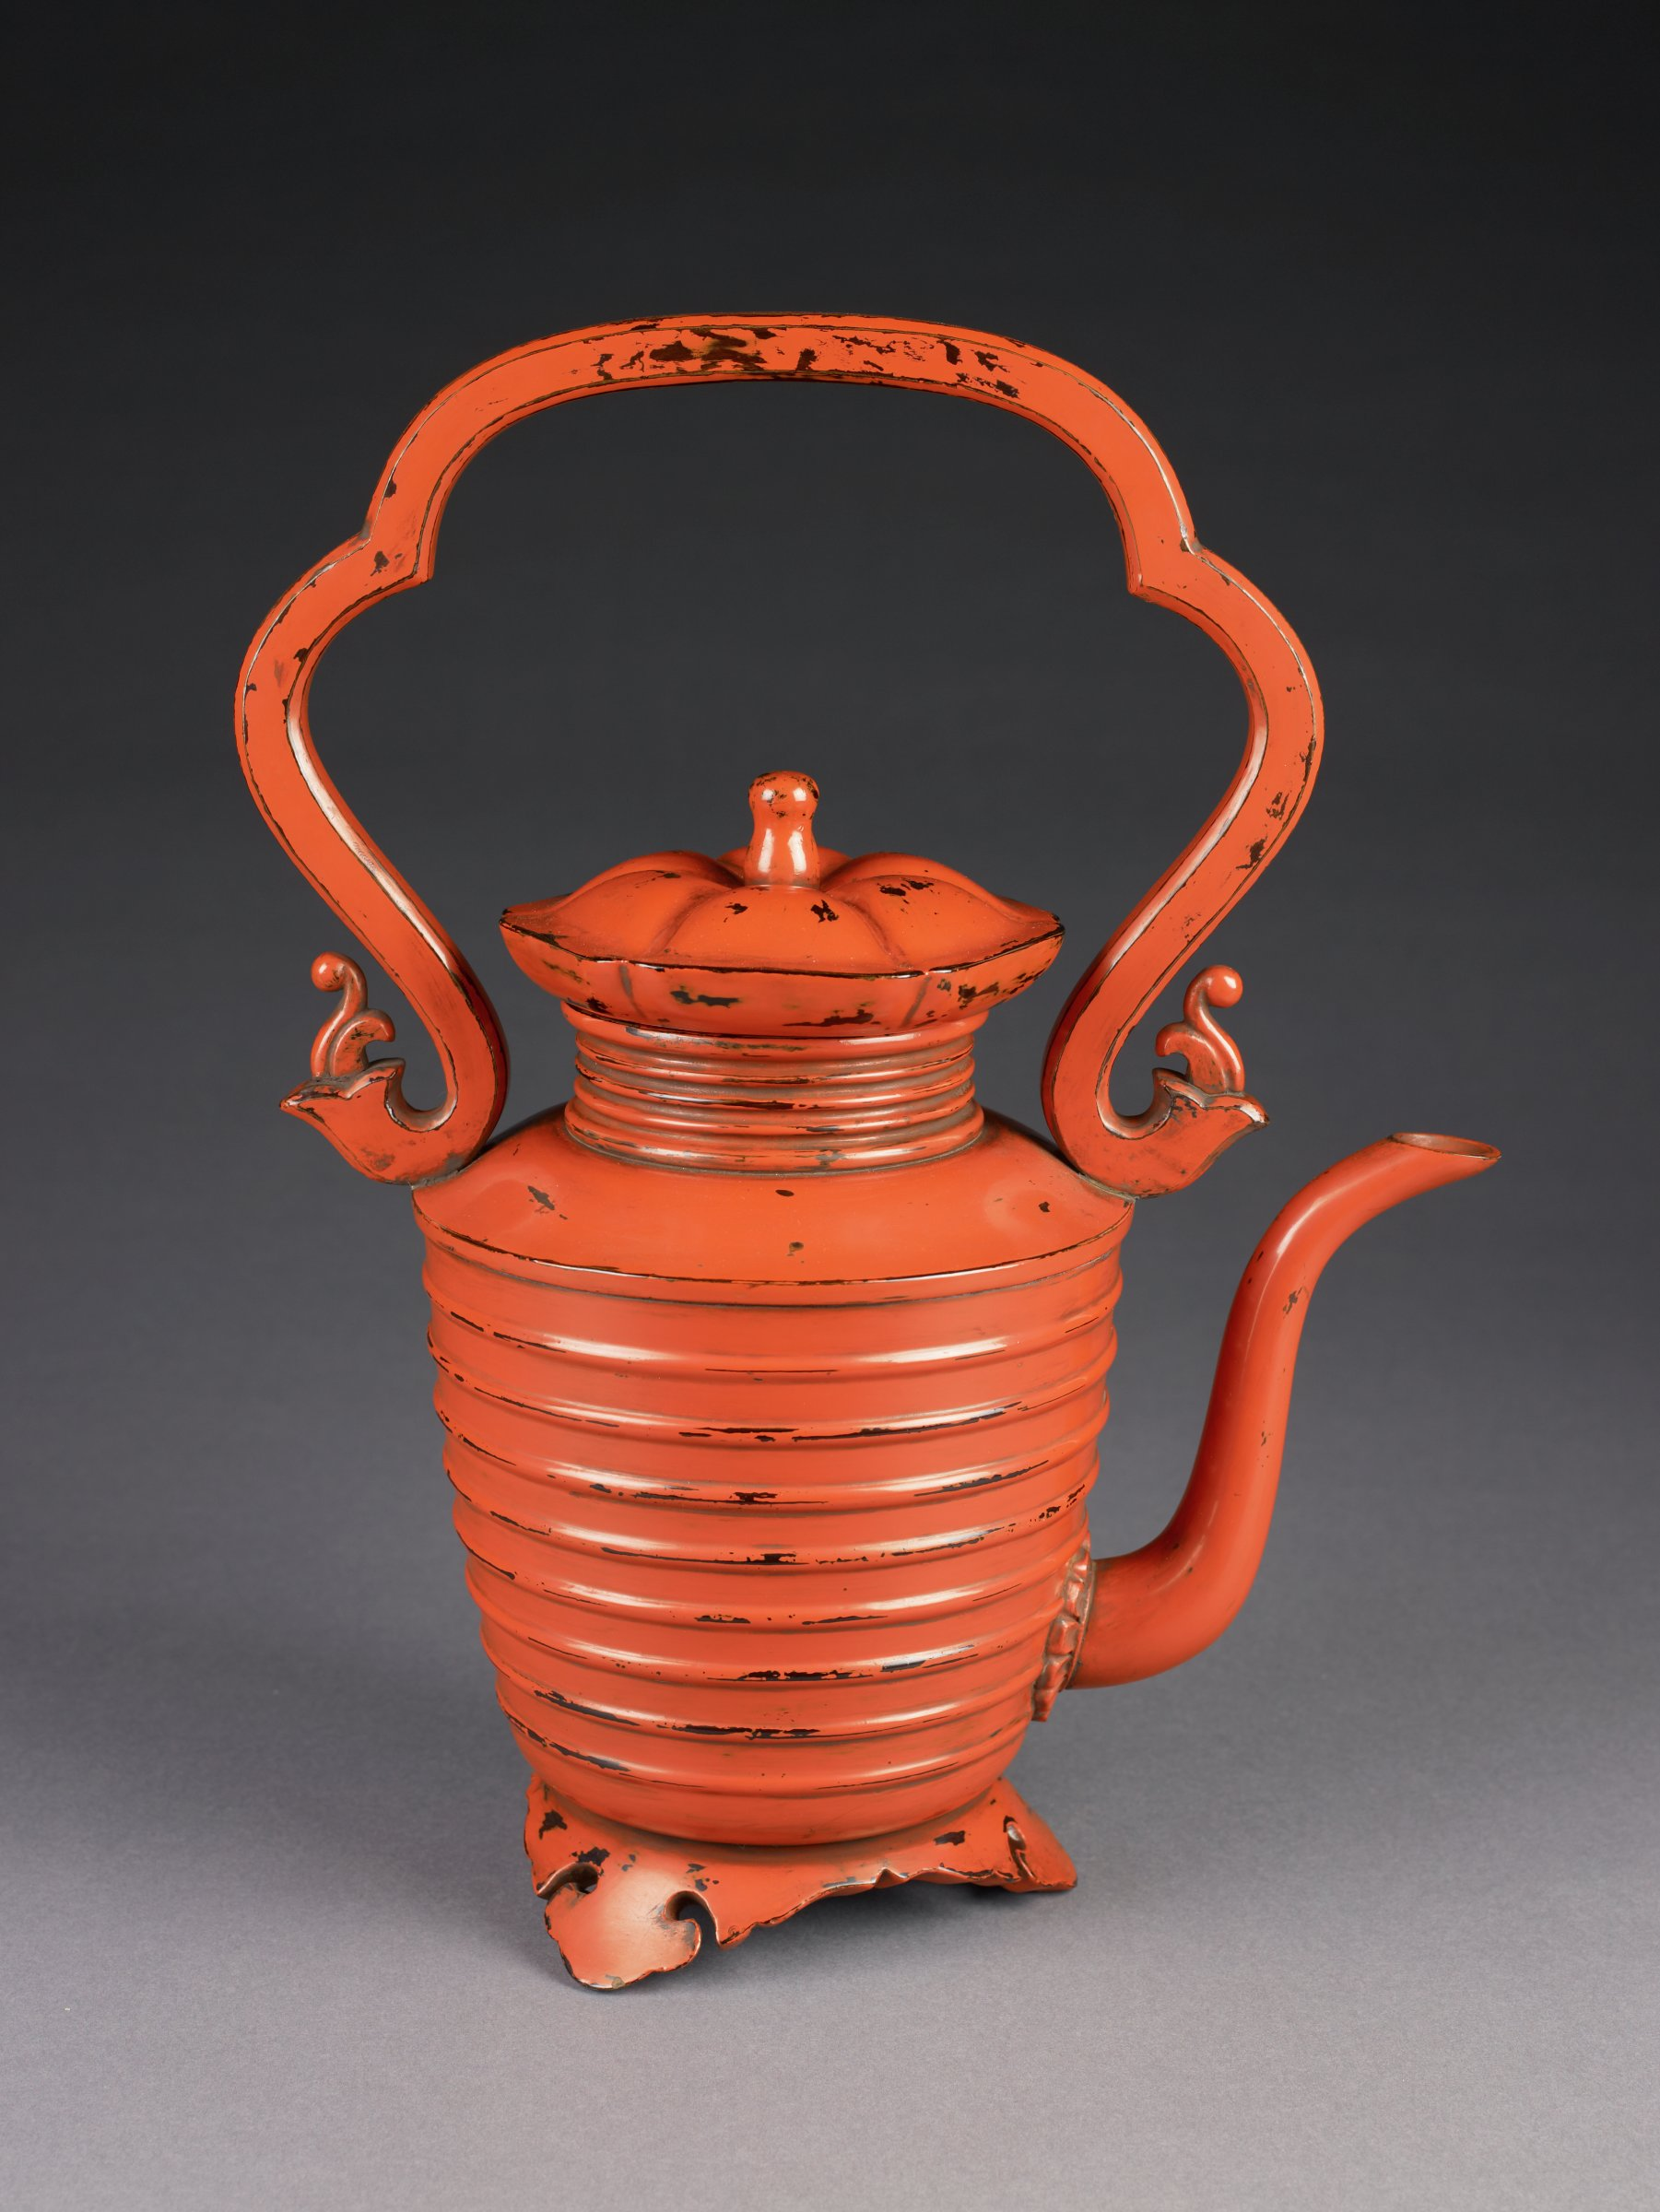 The hot-water ewer, supported by three cloud-collar feet, is covered by red lacquer with an undercoating of black lacquer.  Both the body and the neck are decorated with raised bands. The piece displays both a sense of sturdiness and gracefulness in shapes seen in Negoro ware. The large sweeping handle with stylized floral fittings and the swan-neck spout reveal the elegant design of the piece. The black lacquer underneath revealed as a result of the wear of the red lacquer is part of the aesthetics of modern Japanese folk art.